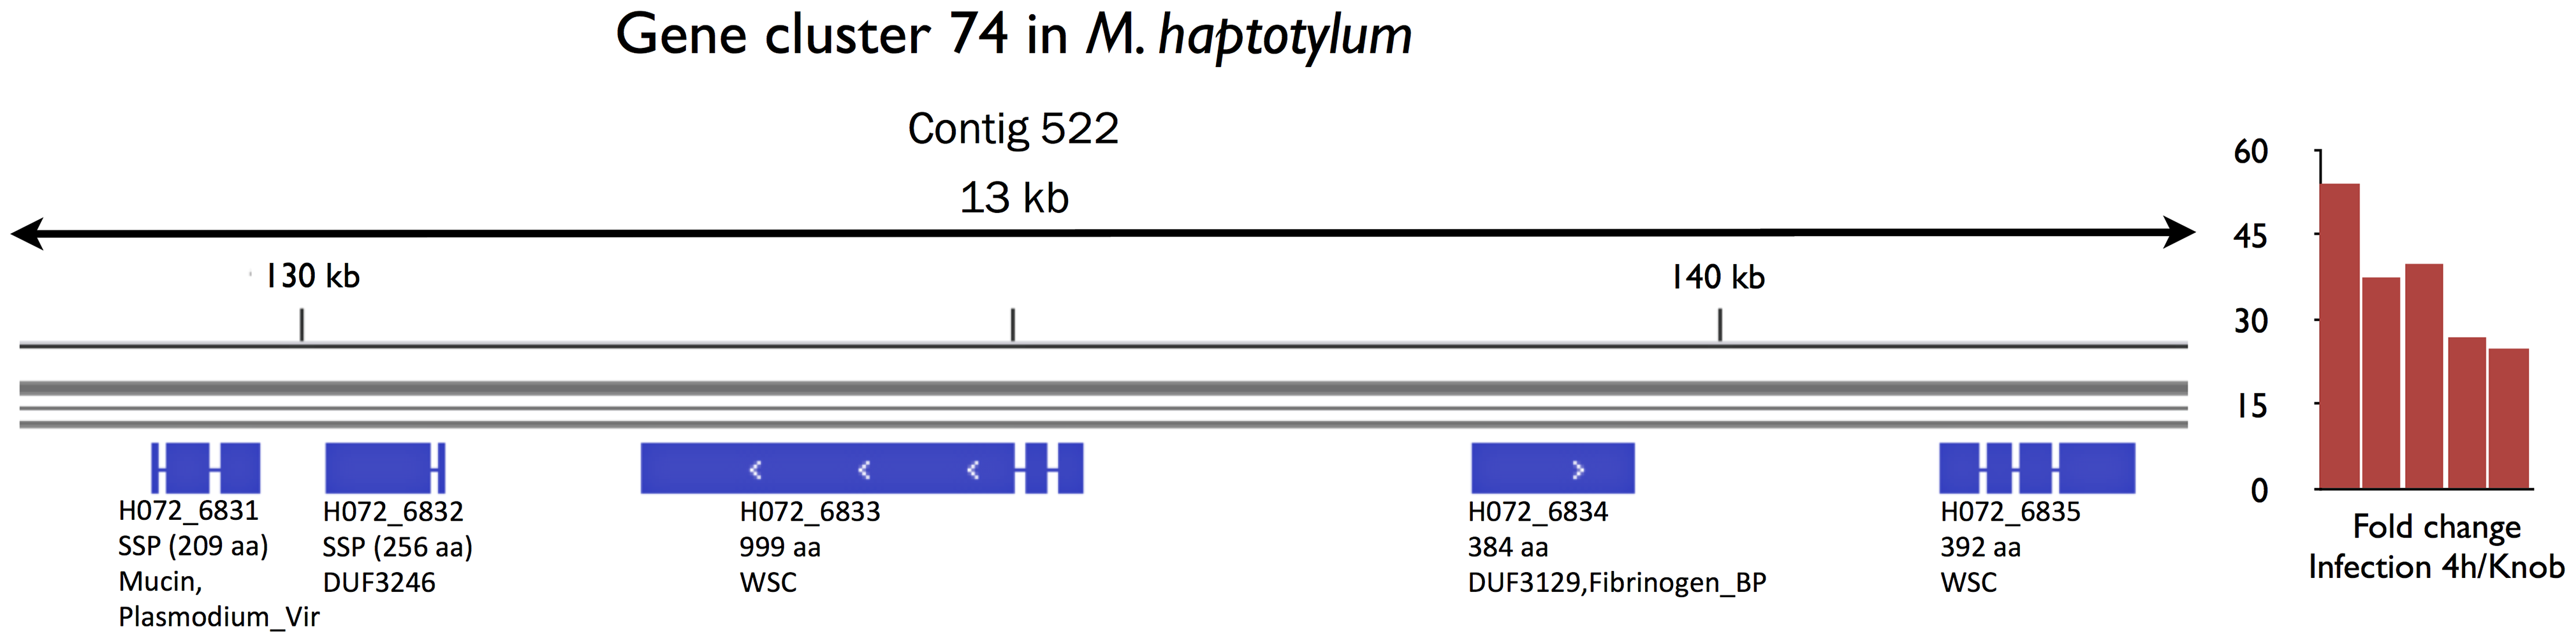 Gene cluster of secreted proteins in <i>M. haptotylum</i> that were highly expressed during nematode infection.